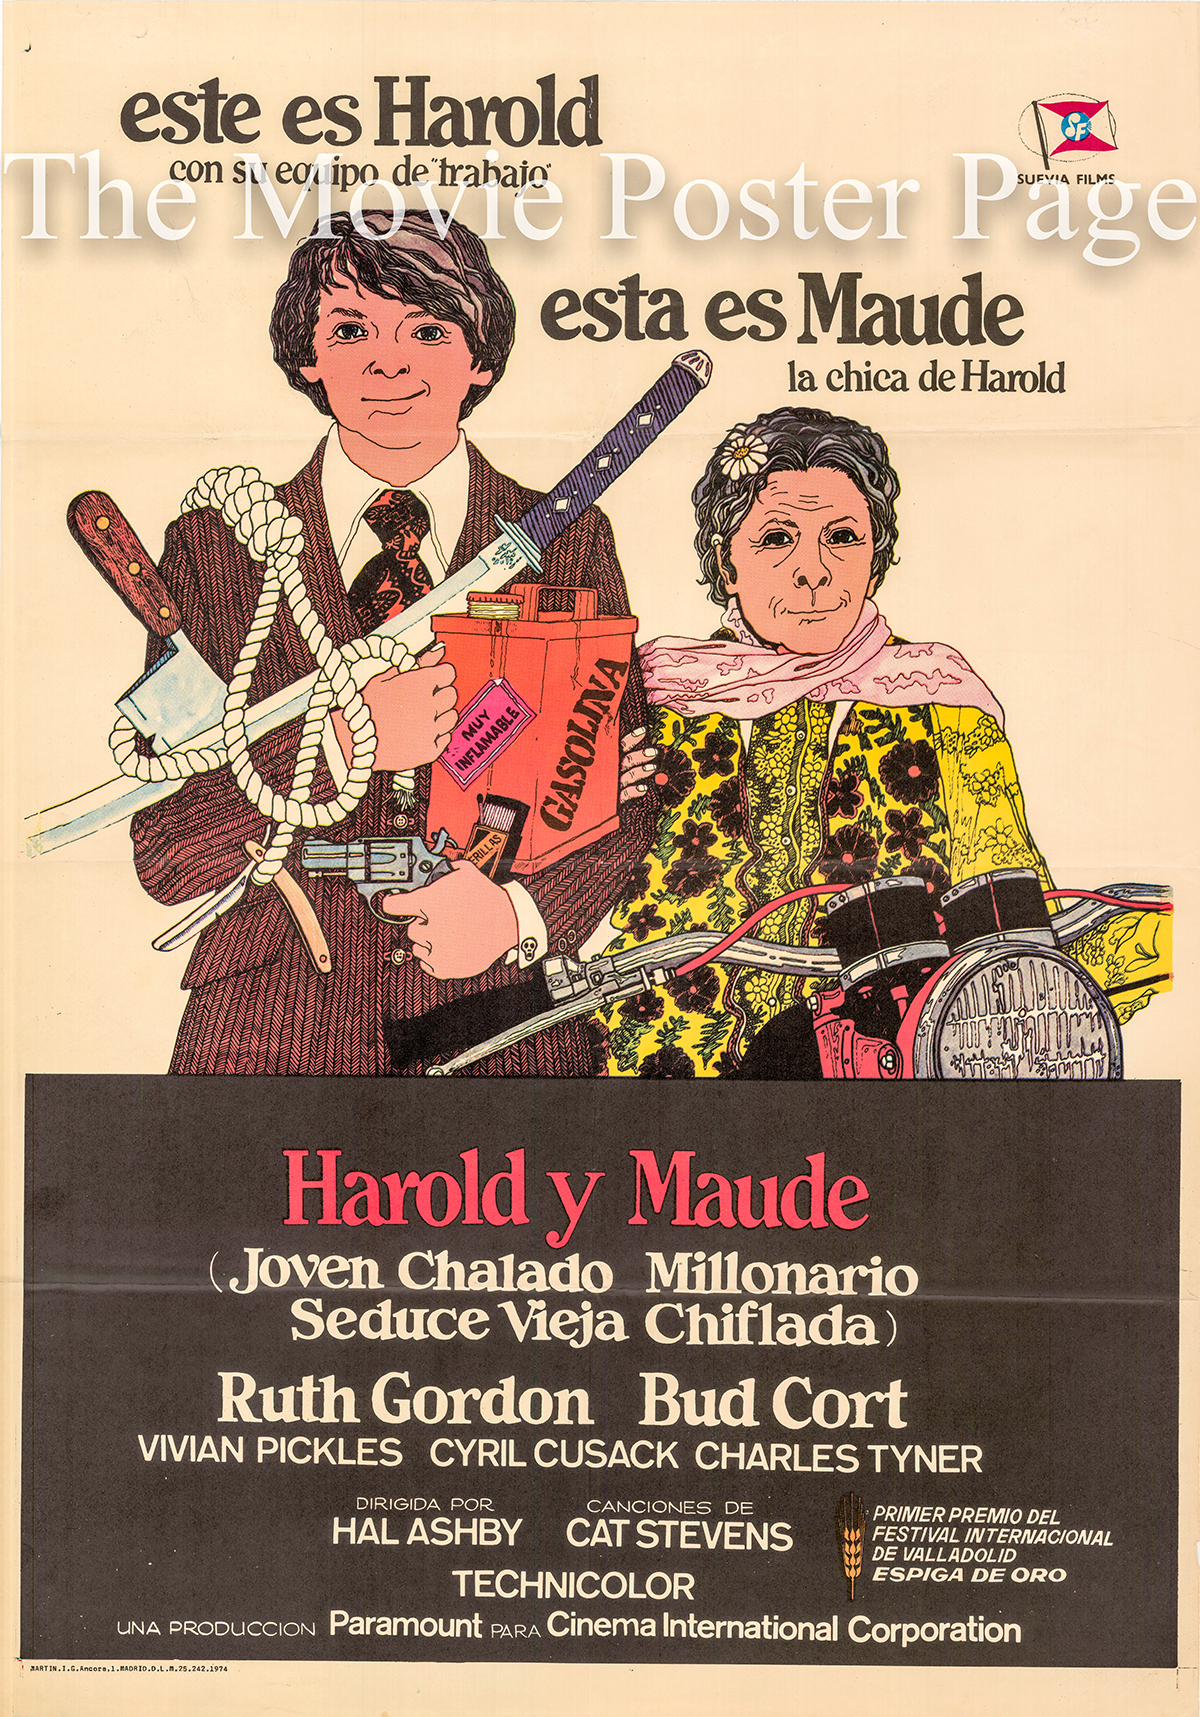 Pictured is a Spanish one-sheet promotional poster fo rthe 1972 Hal Asbby film Harold and Maude starring Ruth Gordon as Maude.